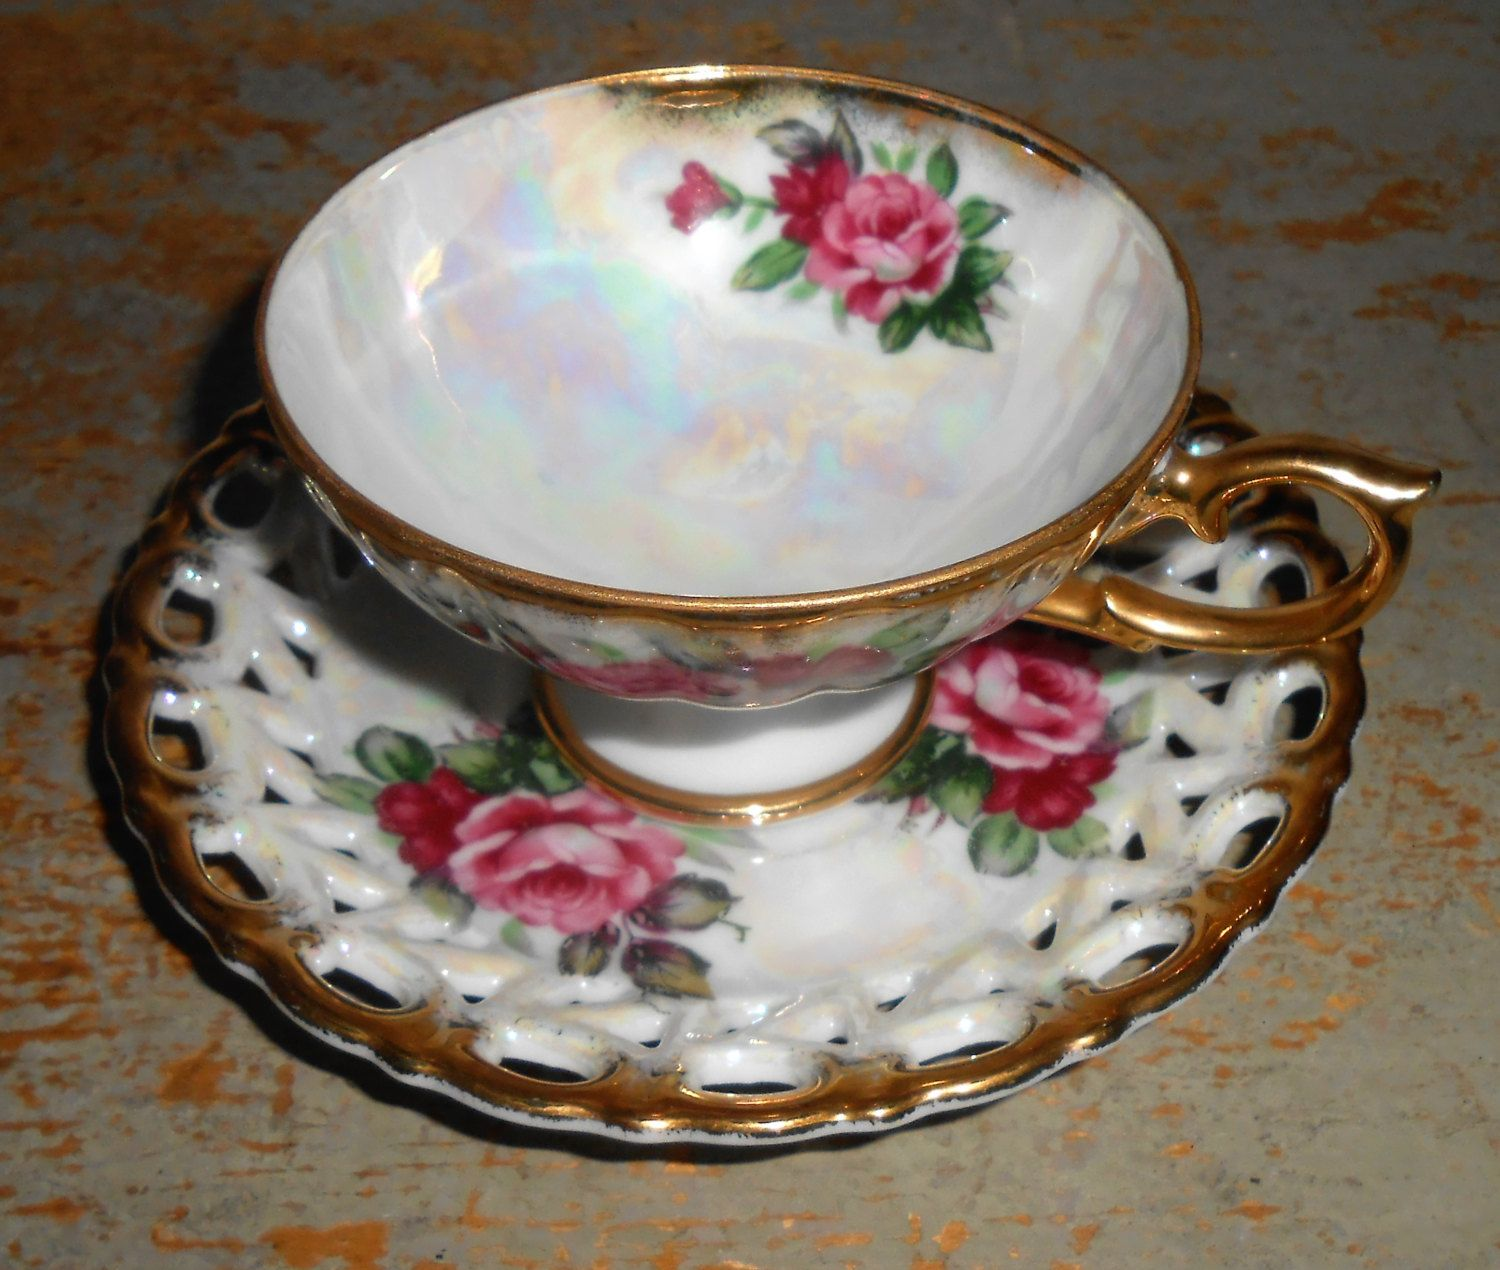 Vintage Tea Cup & Saucer, Shafford, Rose, Floral,  Gold,  Footed Tea Cup,  Iridescent, Tea Cup and Saucer by TheBackShak on Etsy